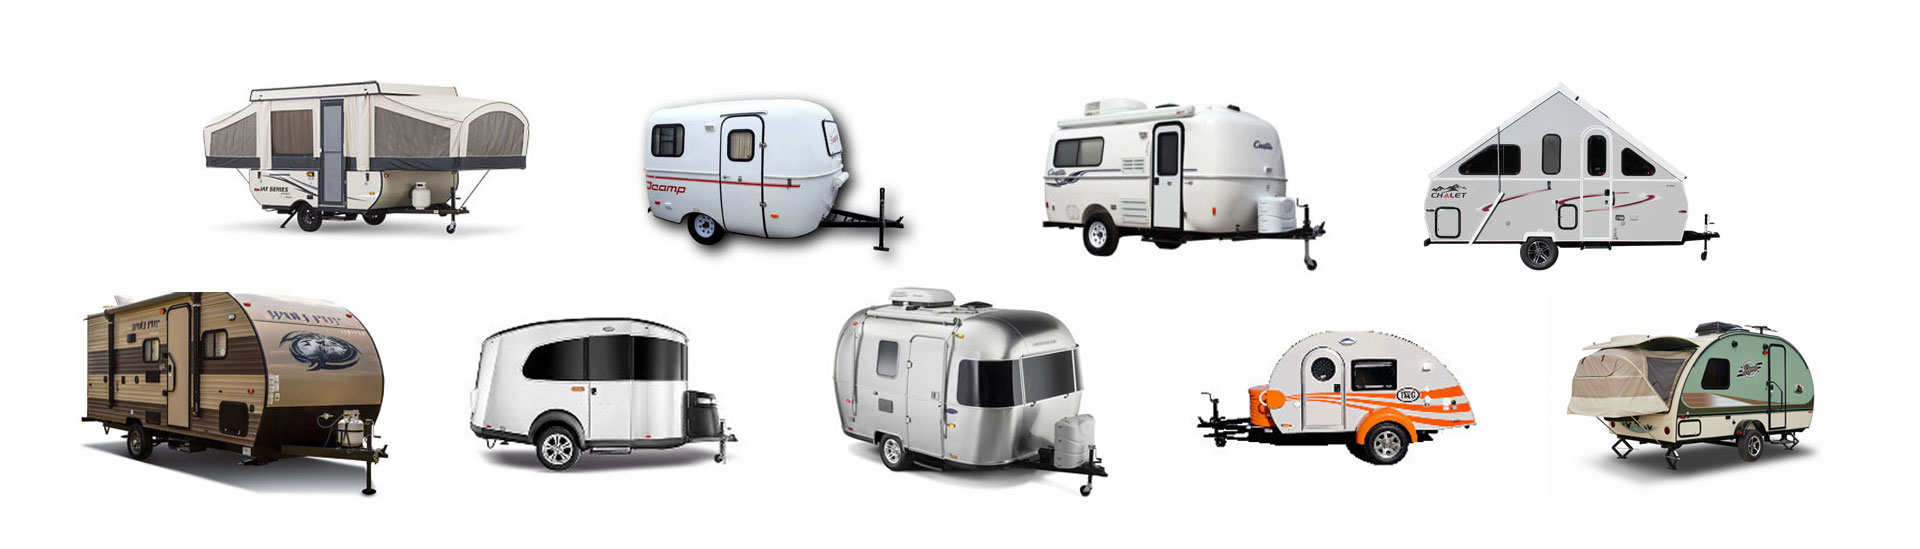 tinyTowable.com – All about campgrounds and small travel trailers